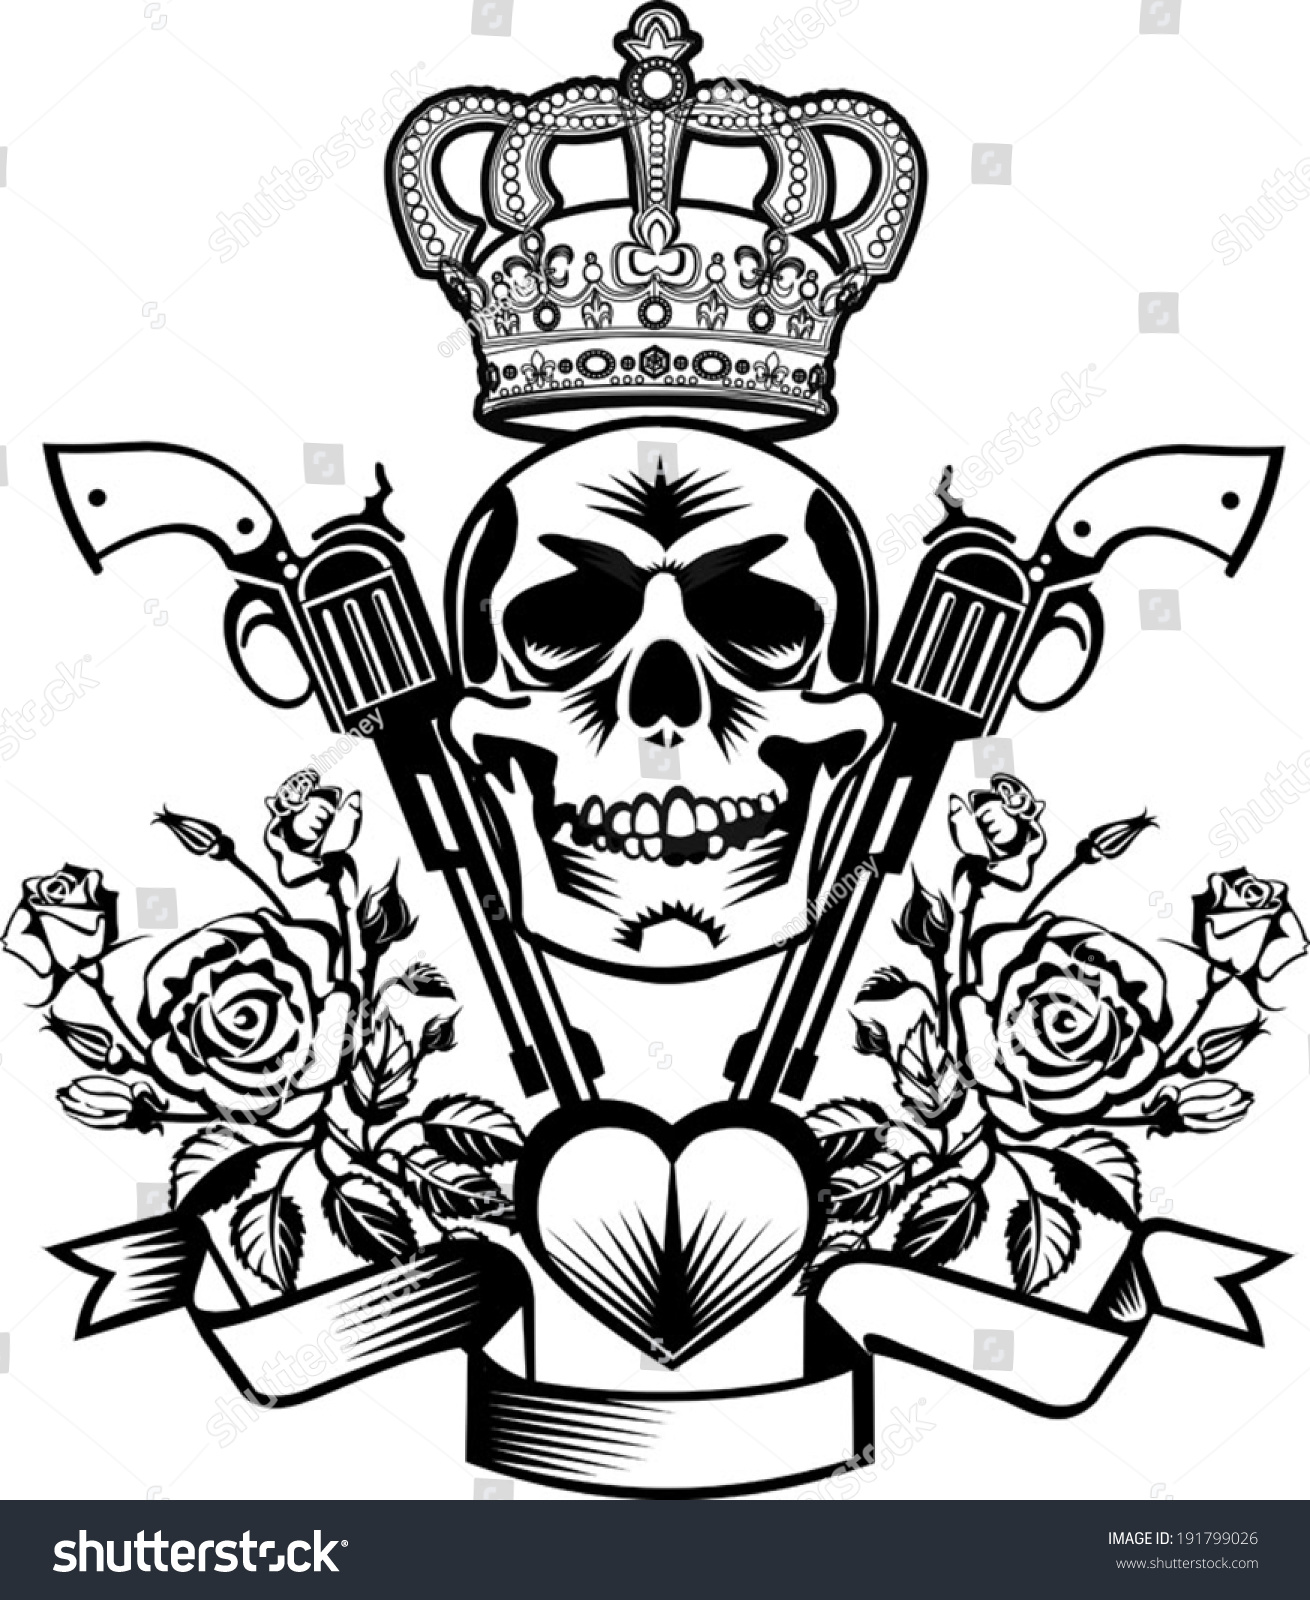 Drawings Of Pistols And Roses Tattoo Skull Guns With Crown